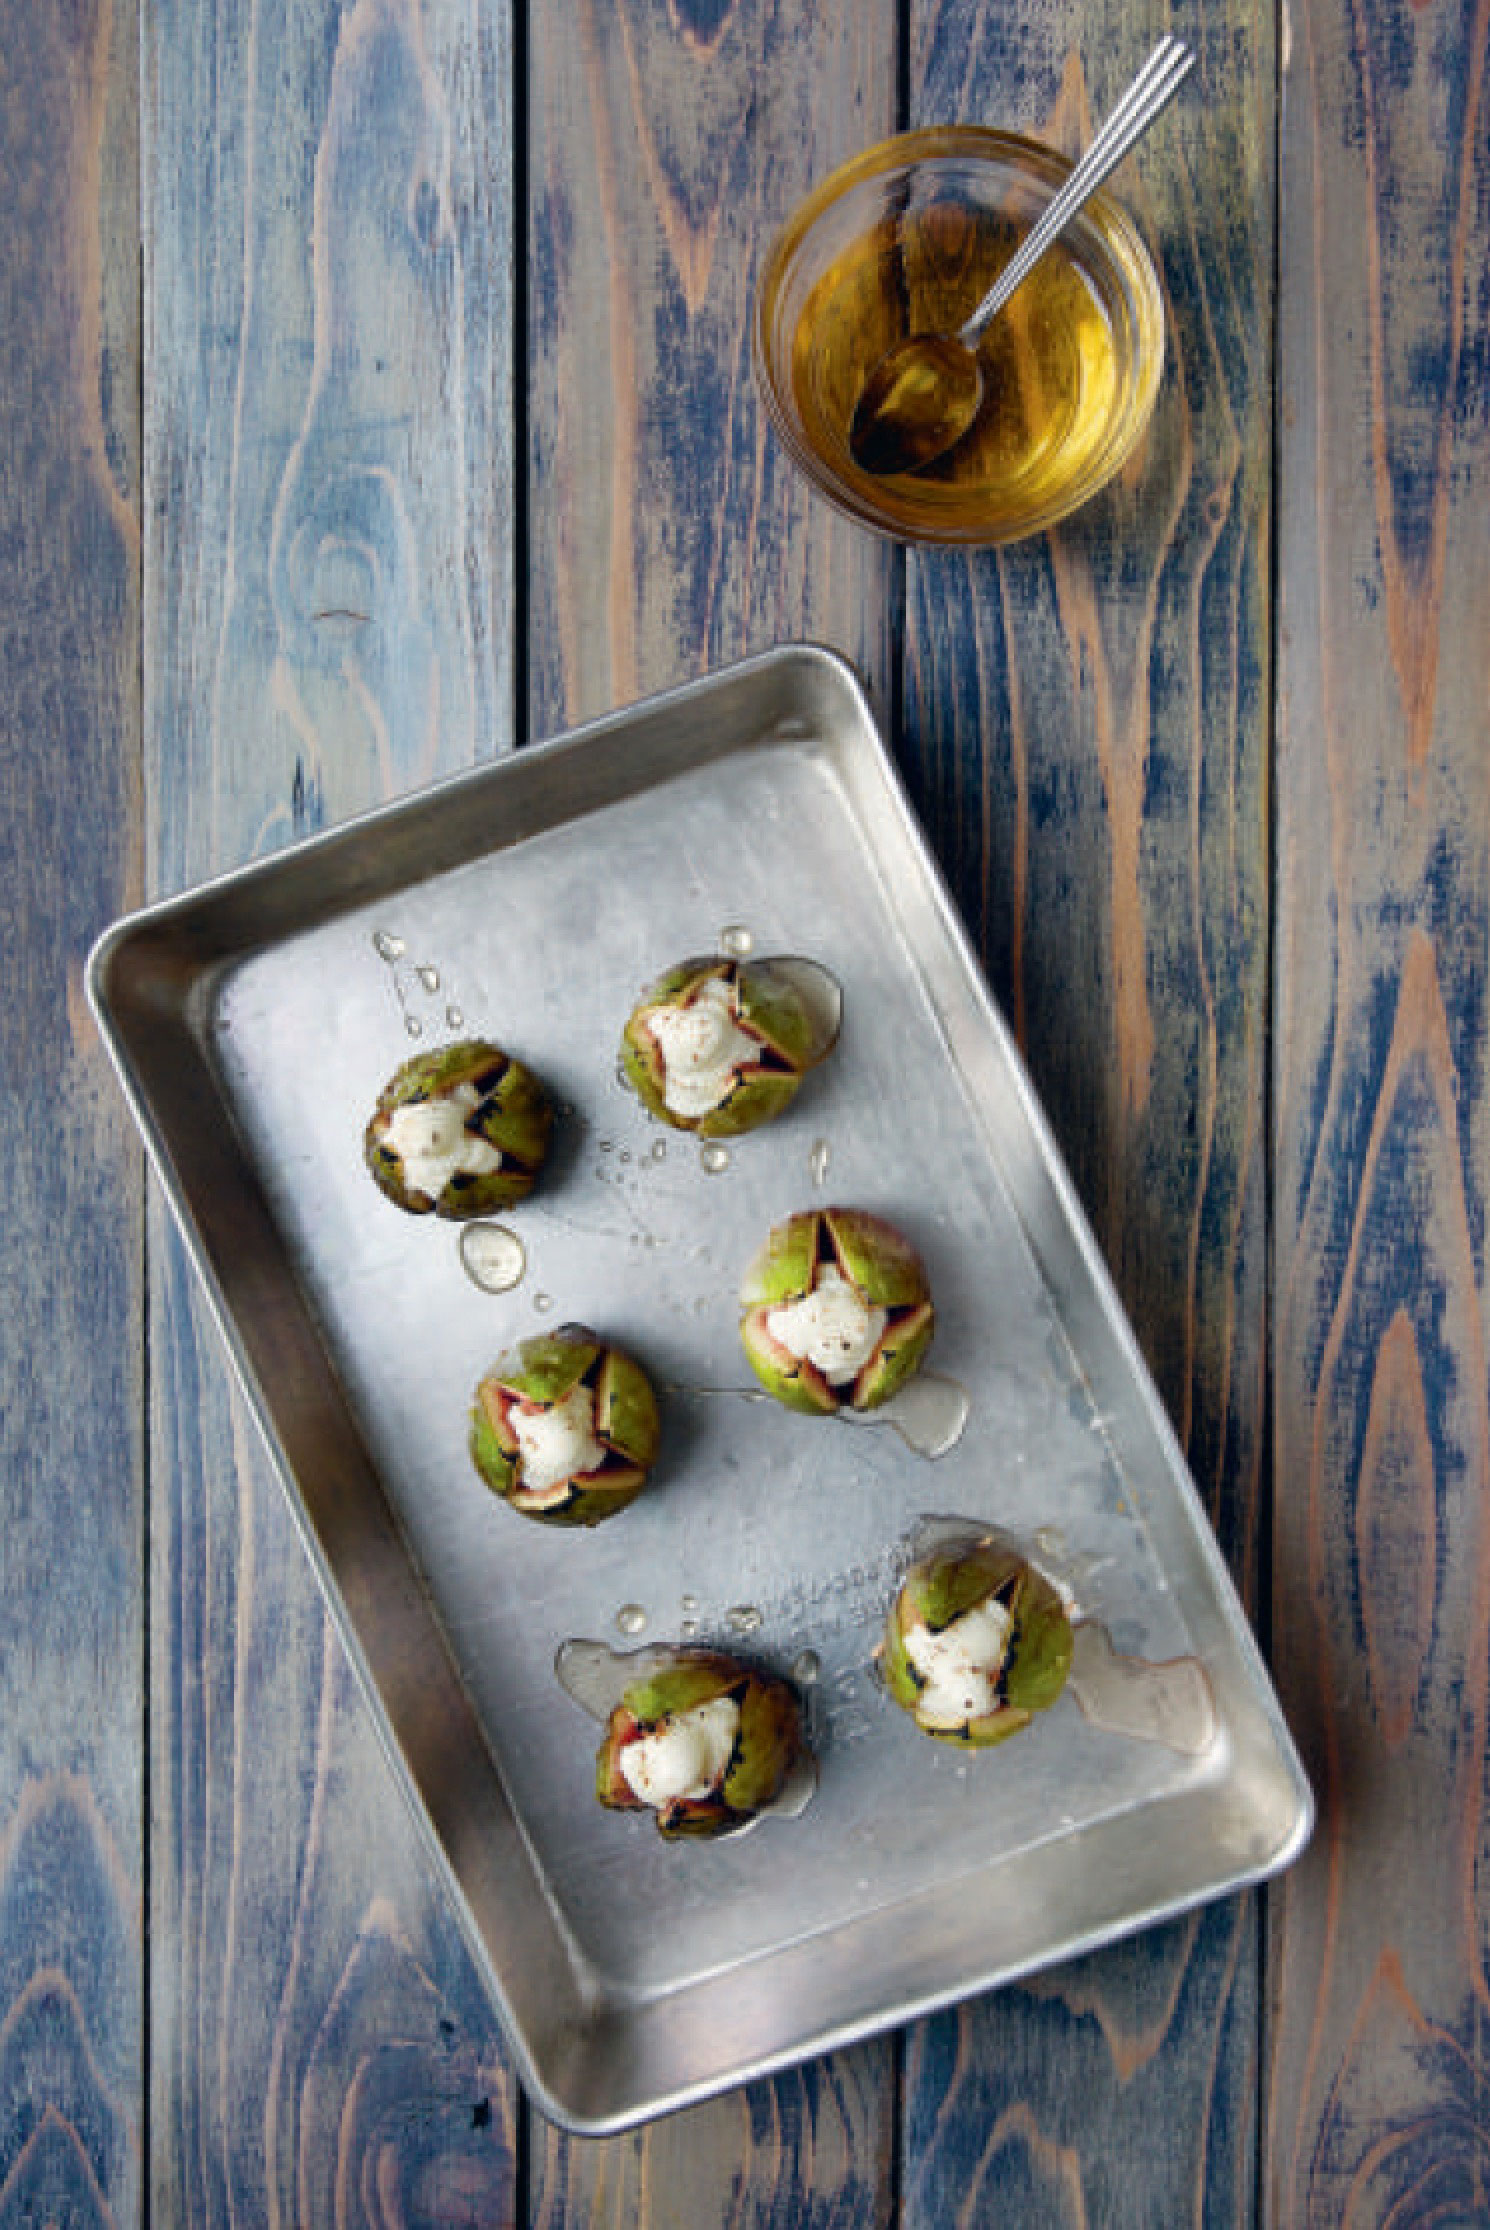 Tupelo Honey and Goat Cheese Stuffed Figs - from America the Cookbook